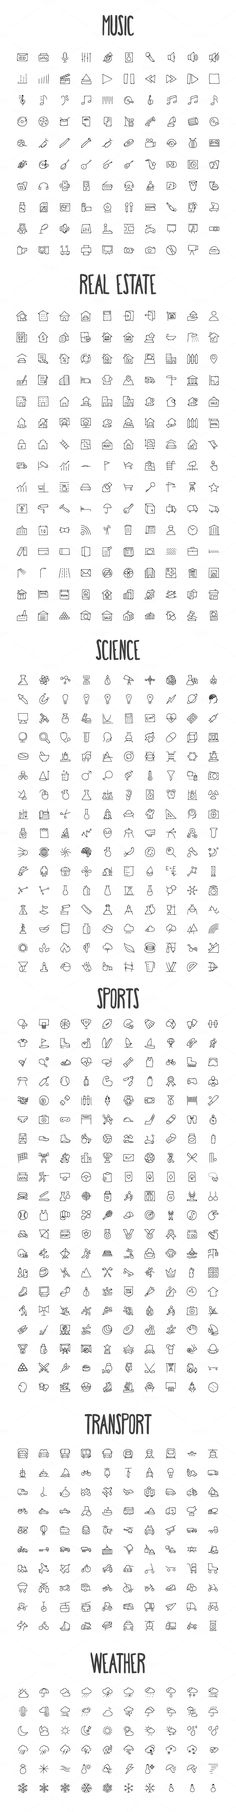 2440 Hand Drawn Doodle Icons Bundle by creativestall on Crea.- 2440 Hand Drawn Doodle Icons Bundle by creativestall on Creative Market - Doodle Drawings, Doodle Art, Doodle Frames, Music Doodle, Doodle Tattoo, Small Drawings, Tattoo Drawings, Bullet Journal Inspiration, Small Tattoos